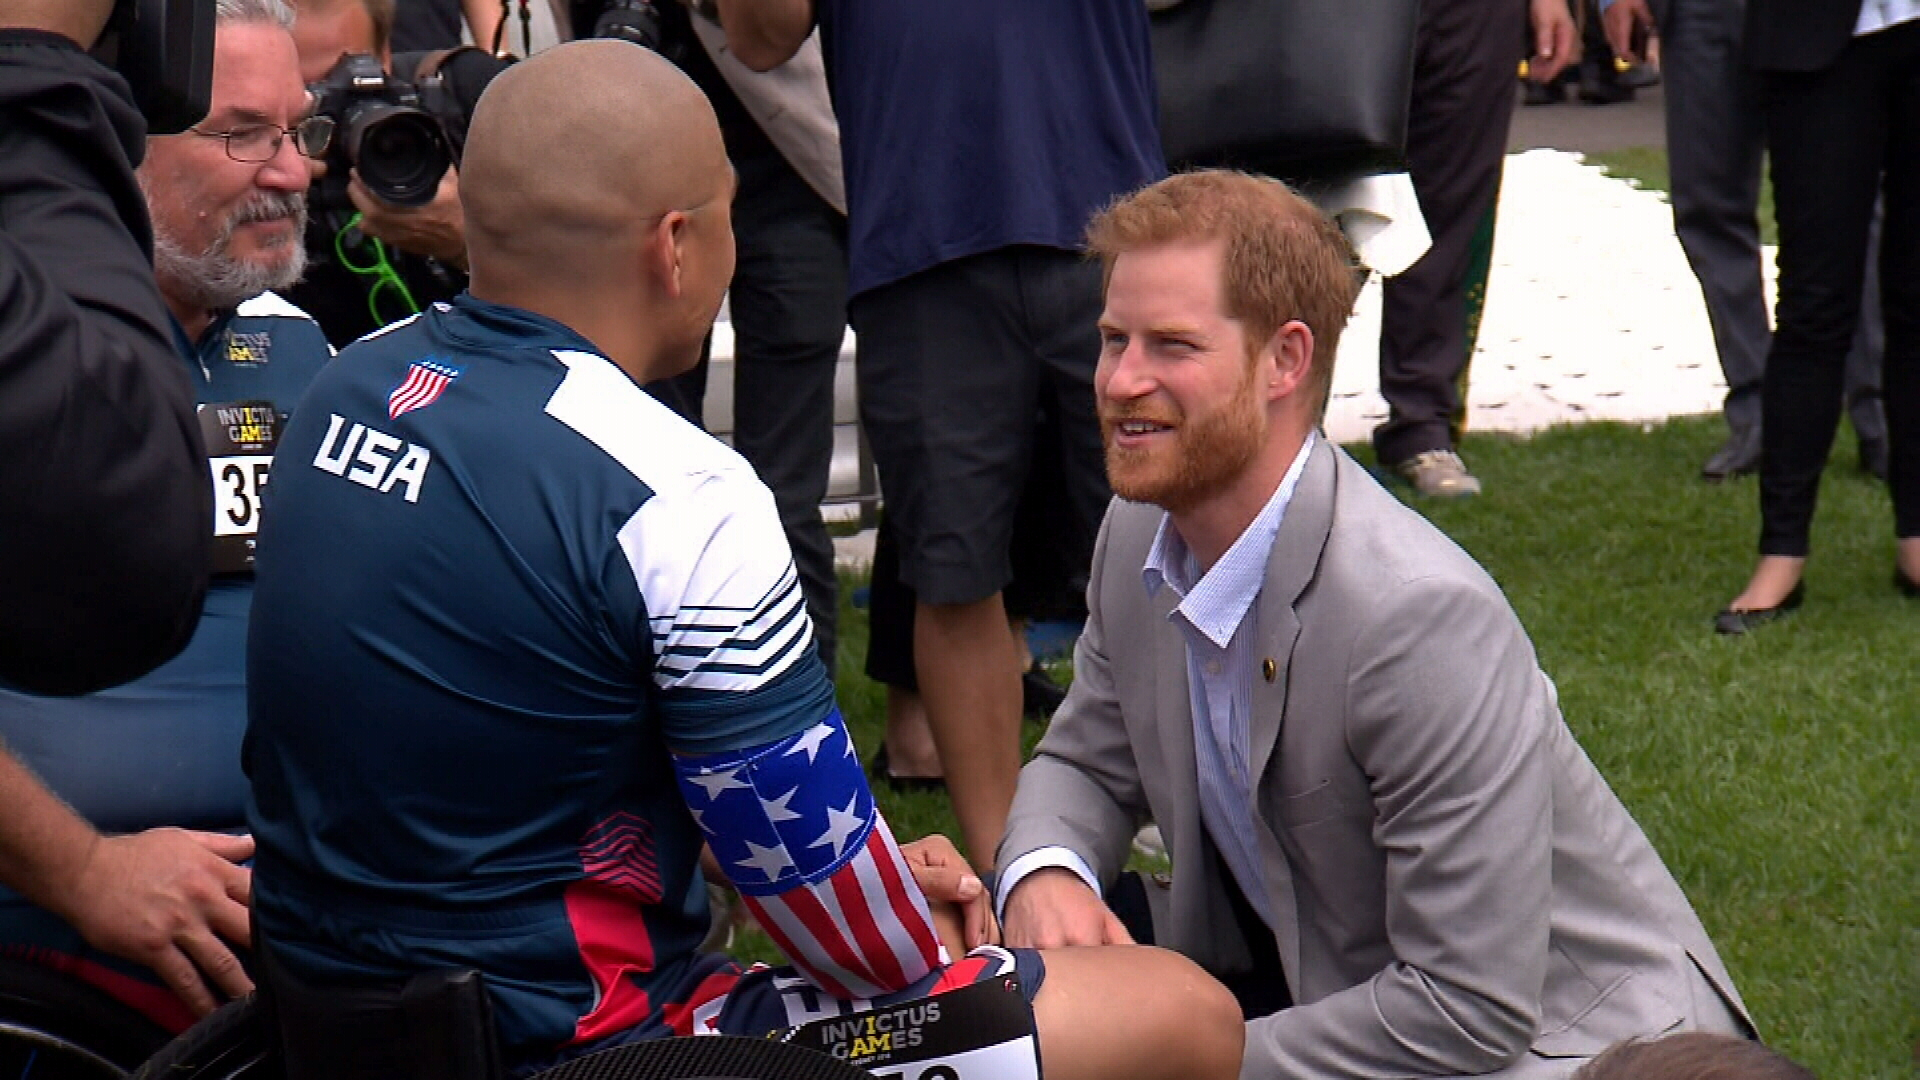 Day one of Prince Harry's Invictus Games